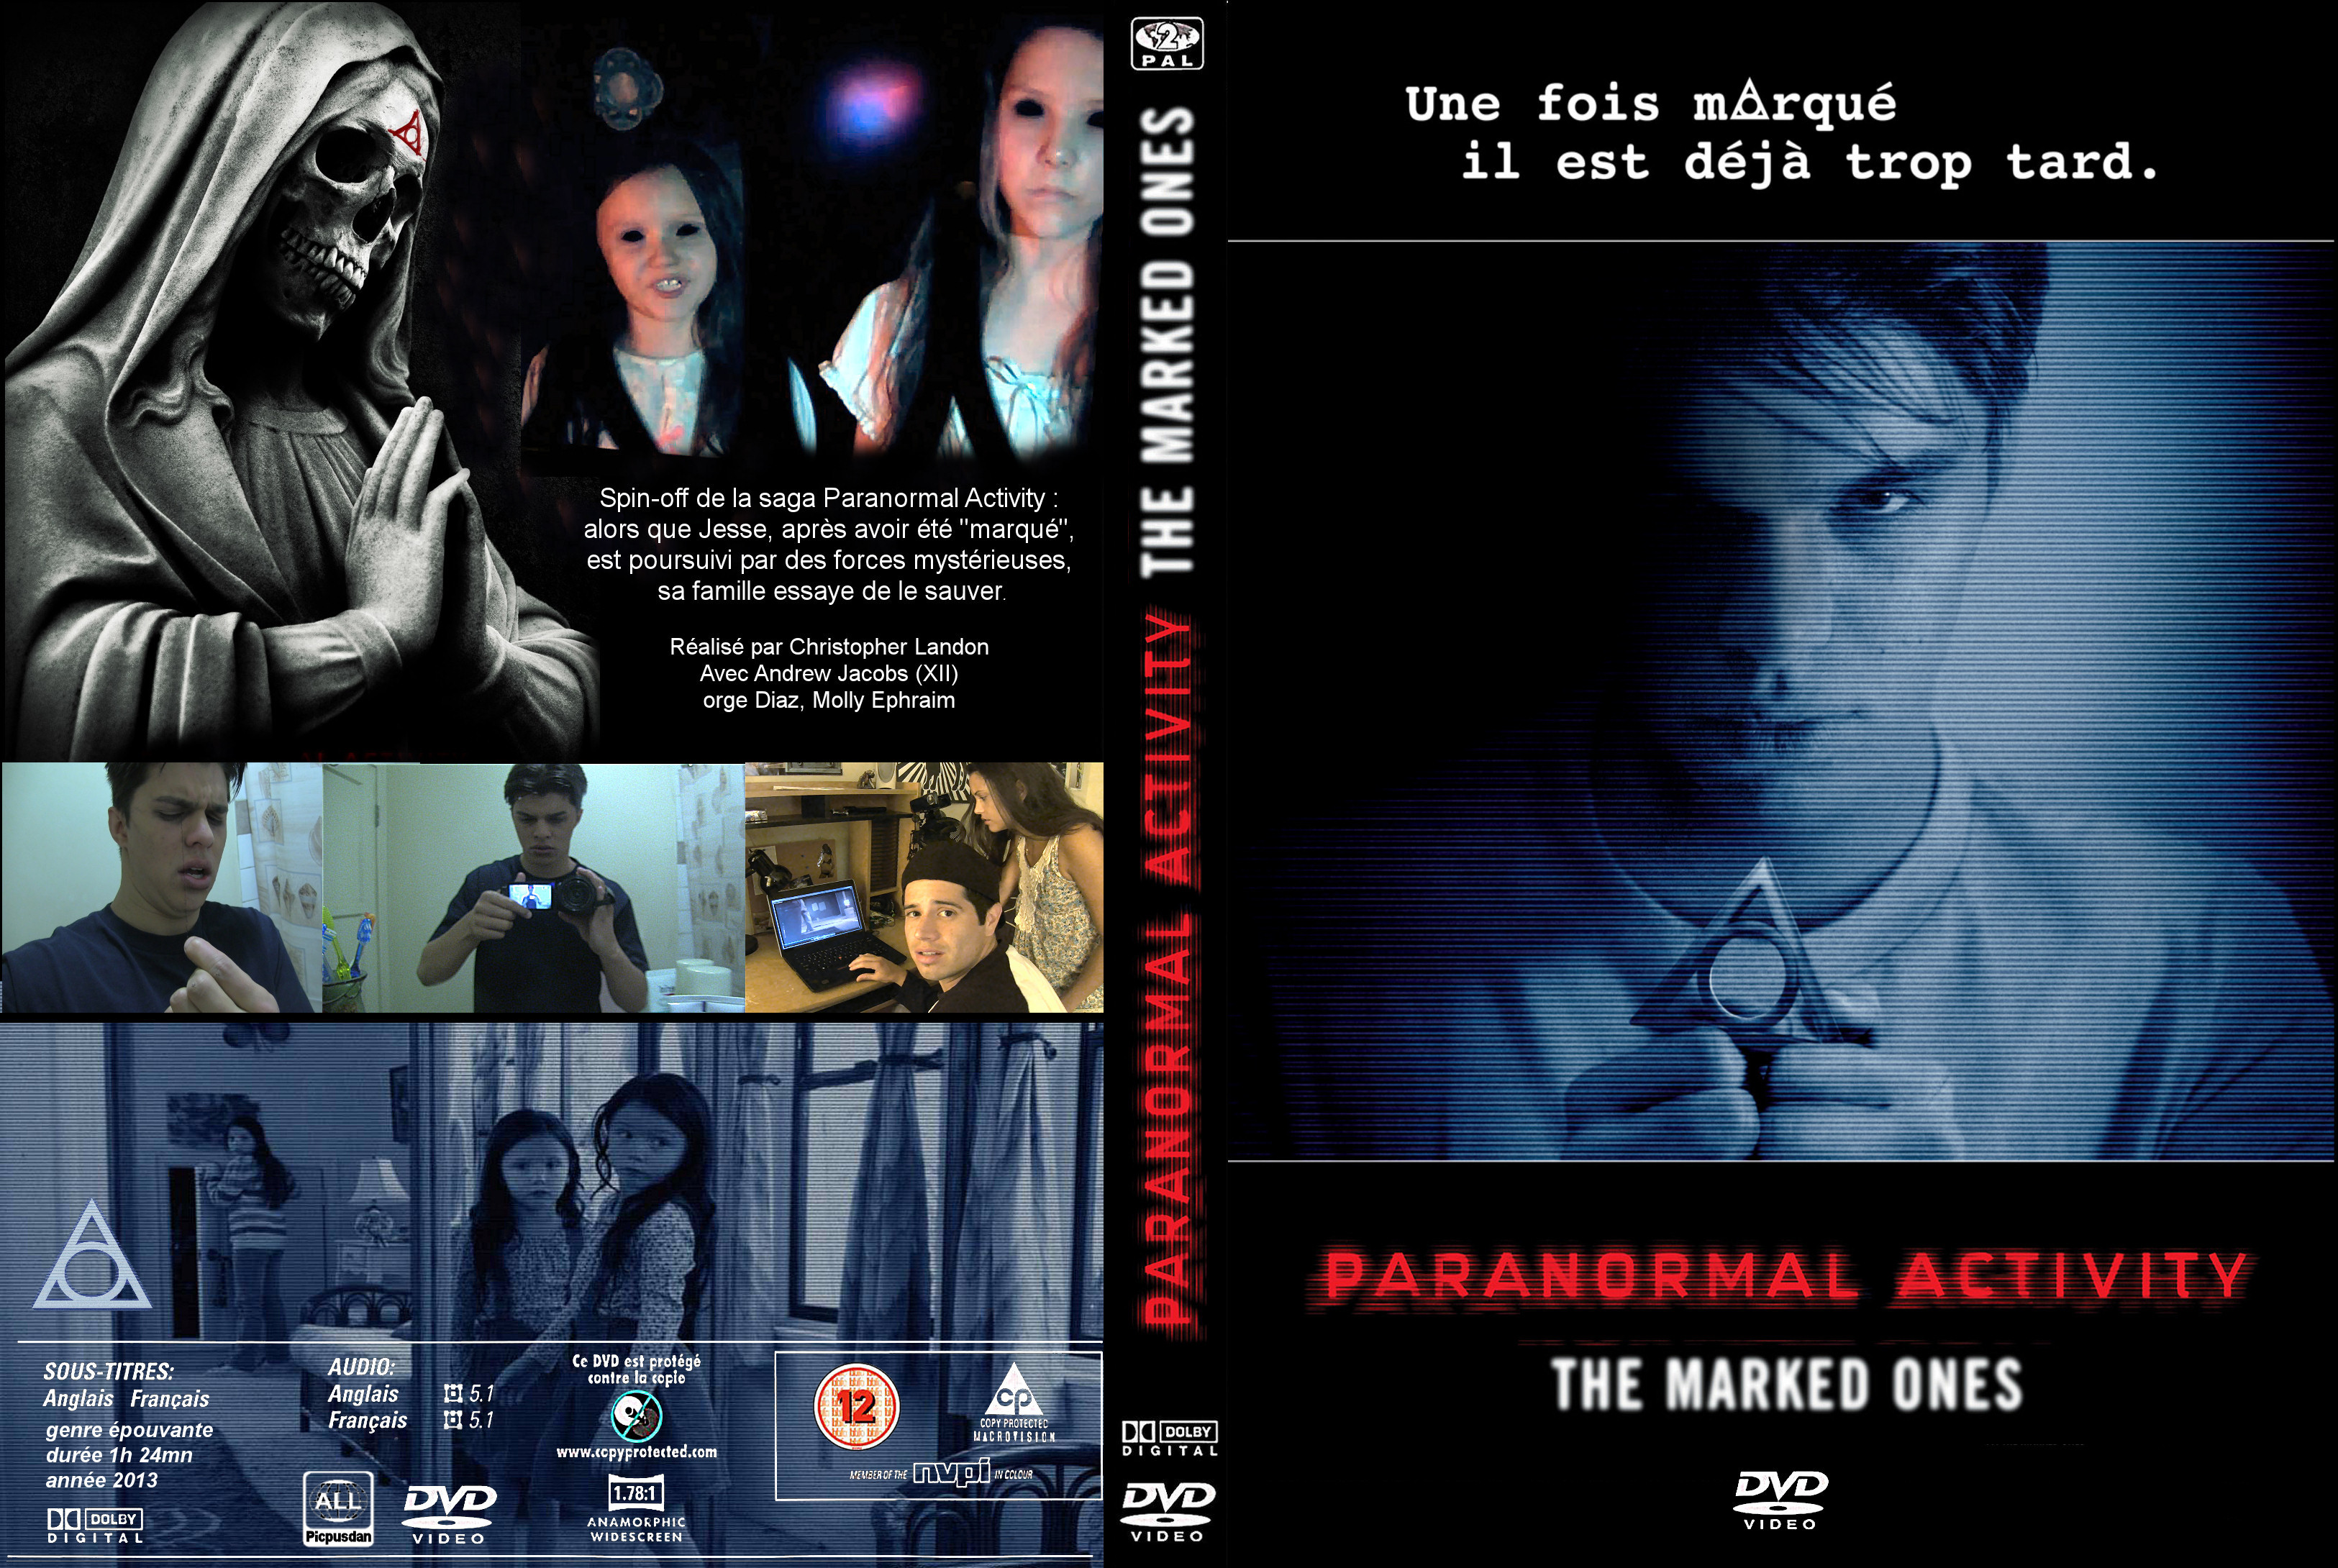 paranormal activity marked ones dvd cover - photo #10